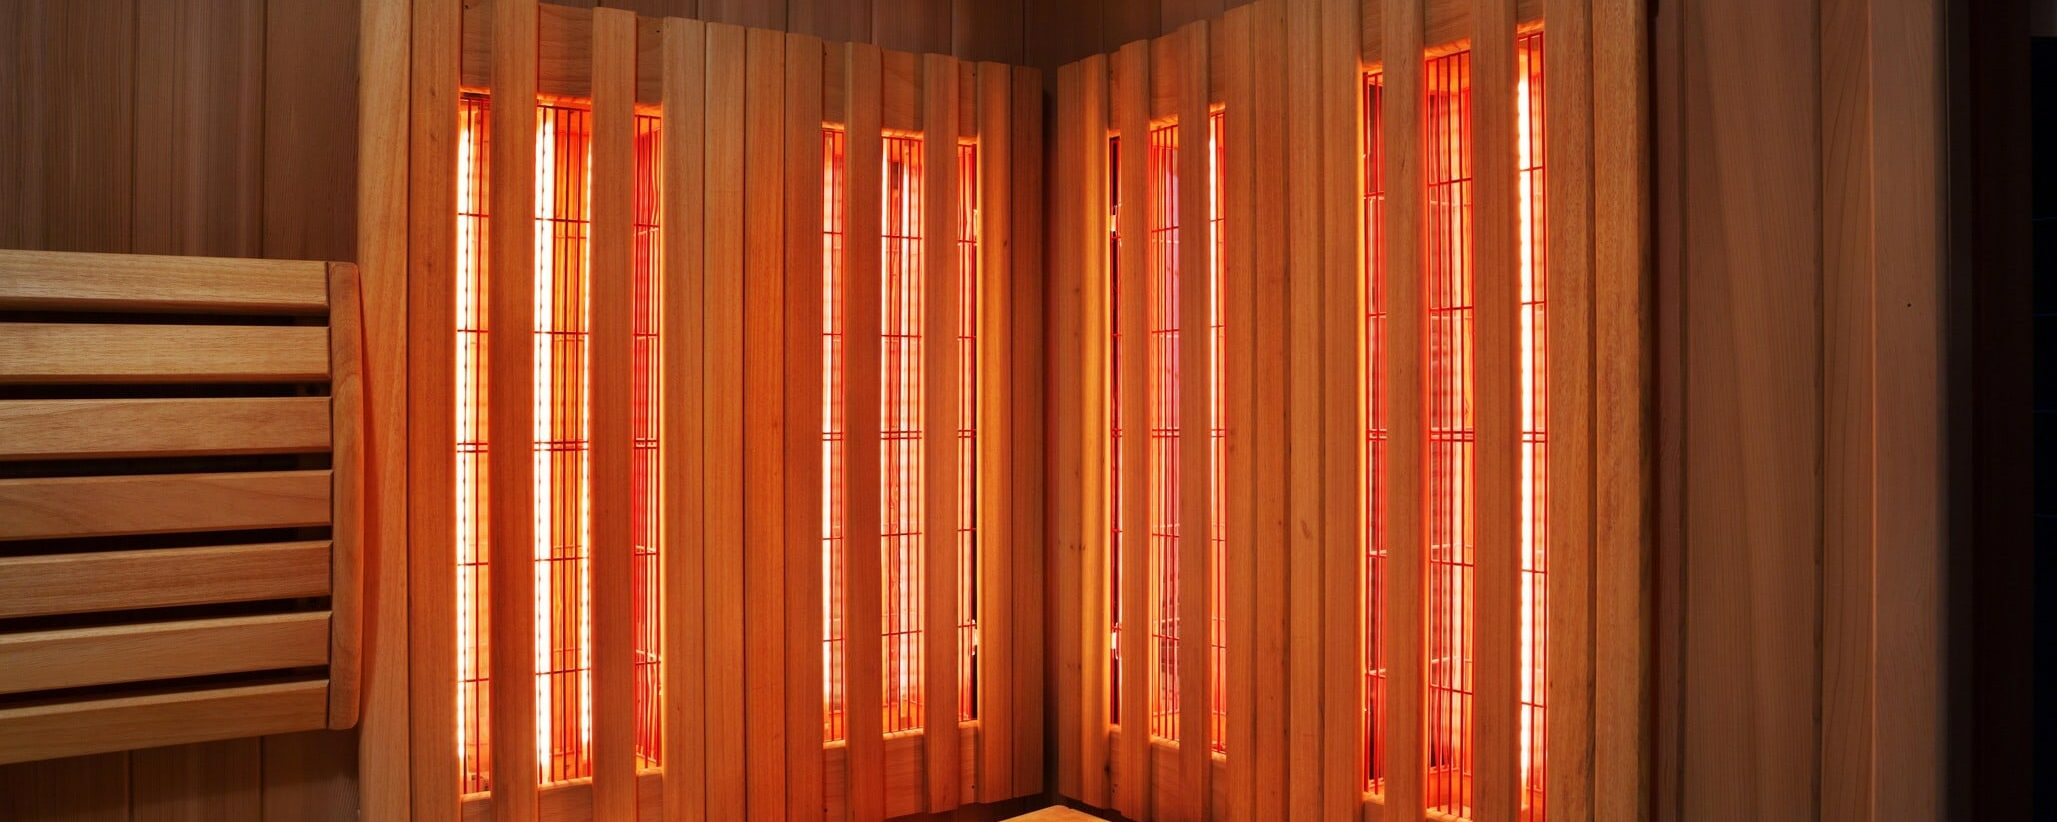 Why It's Good to See Red: The Benefits of Infrared Saunas